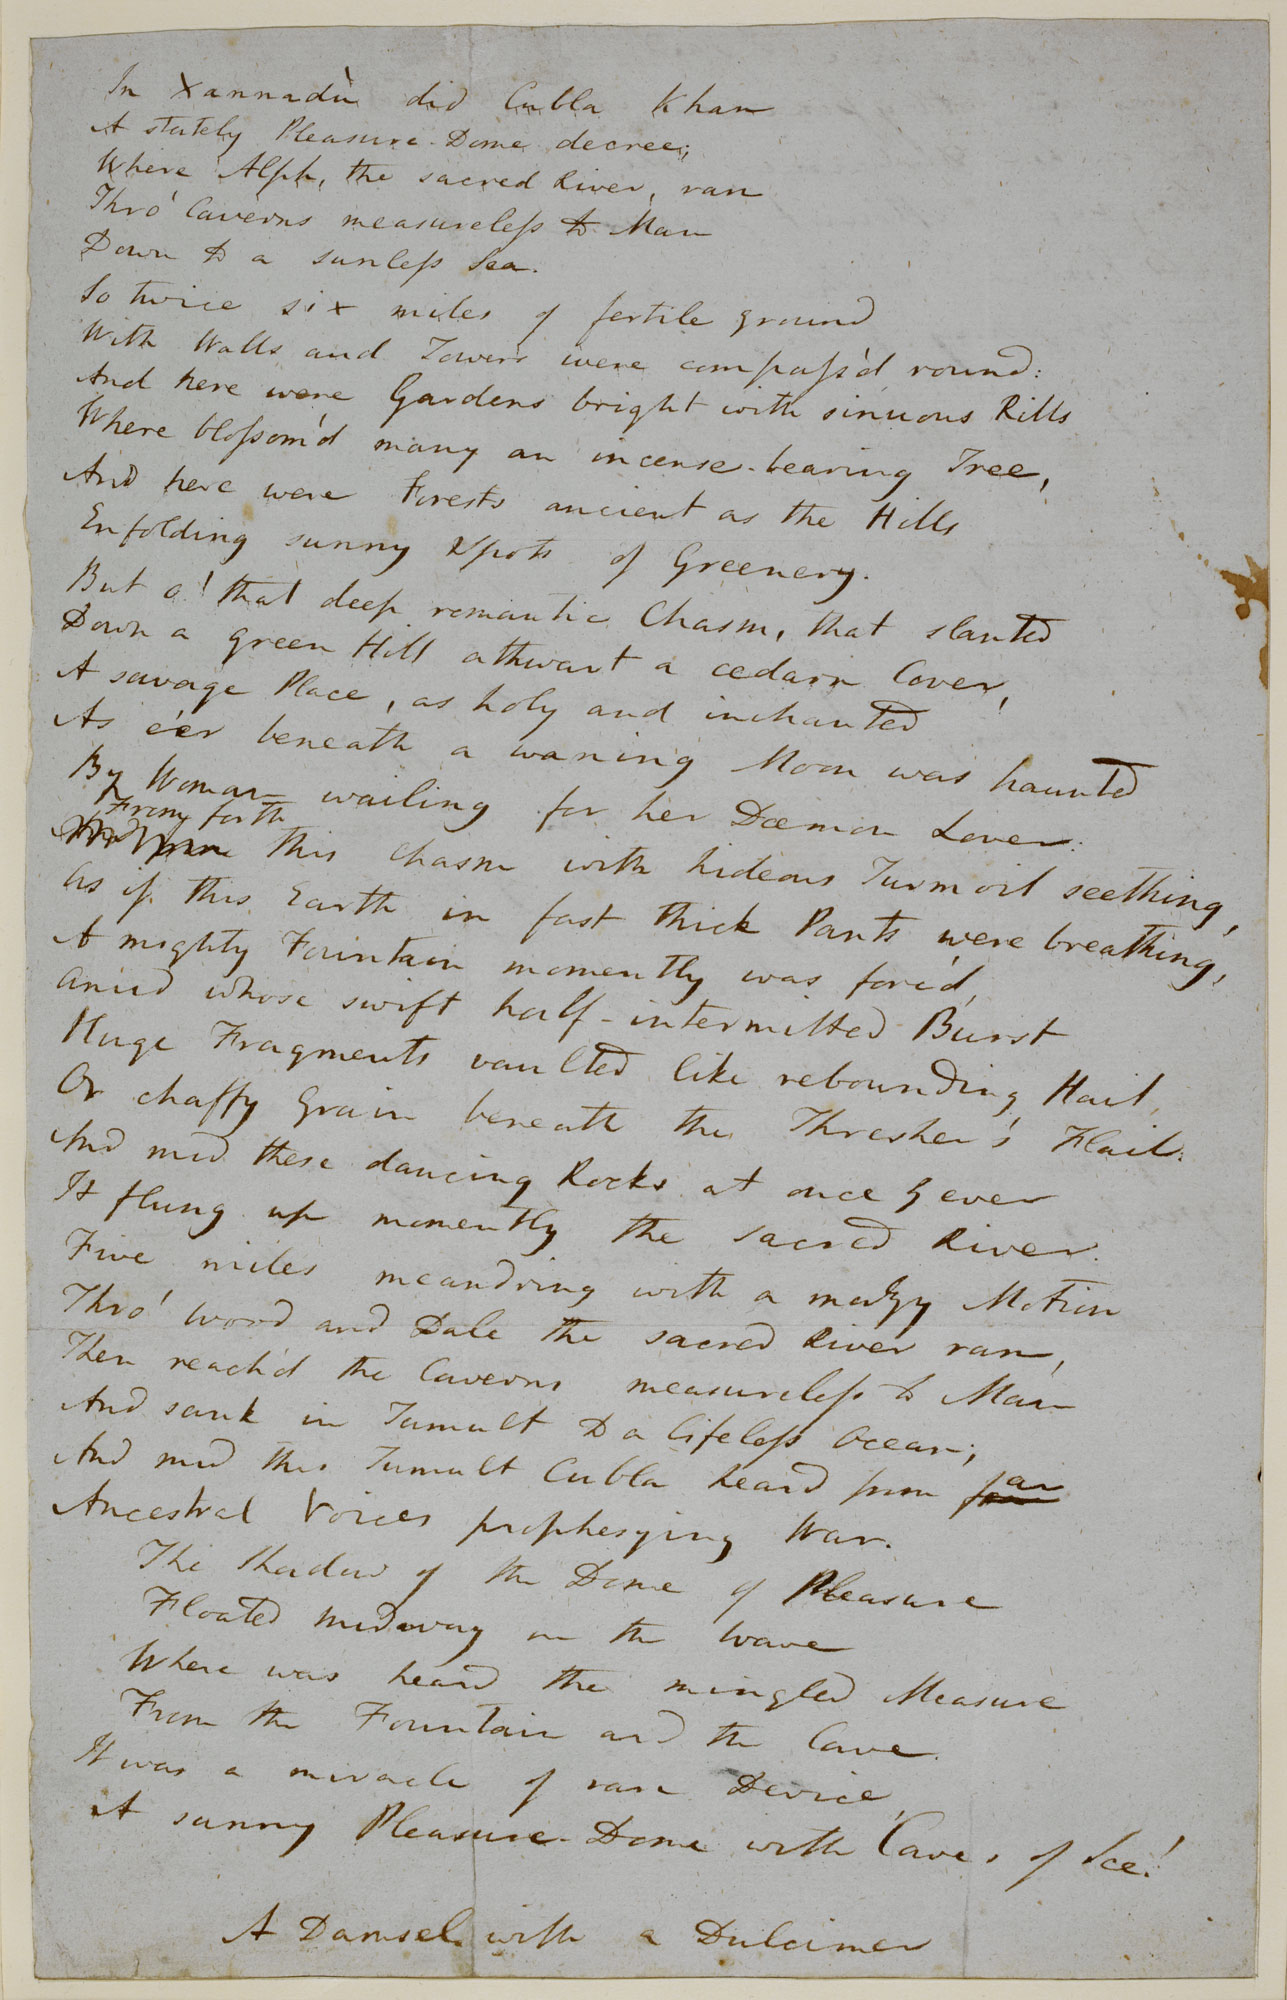 Manuscript of S T Coleridge's 'Kubla Khan' [folio: 1r]